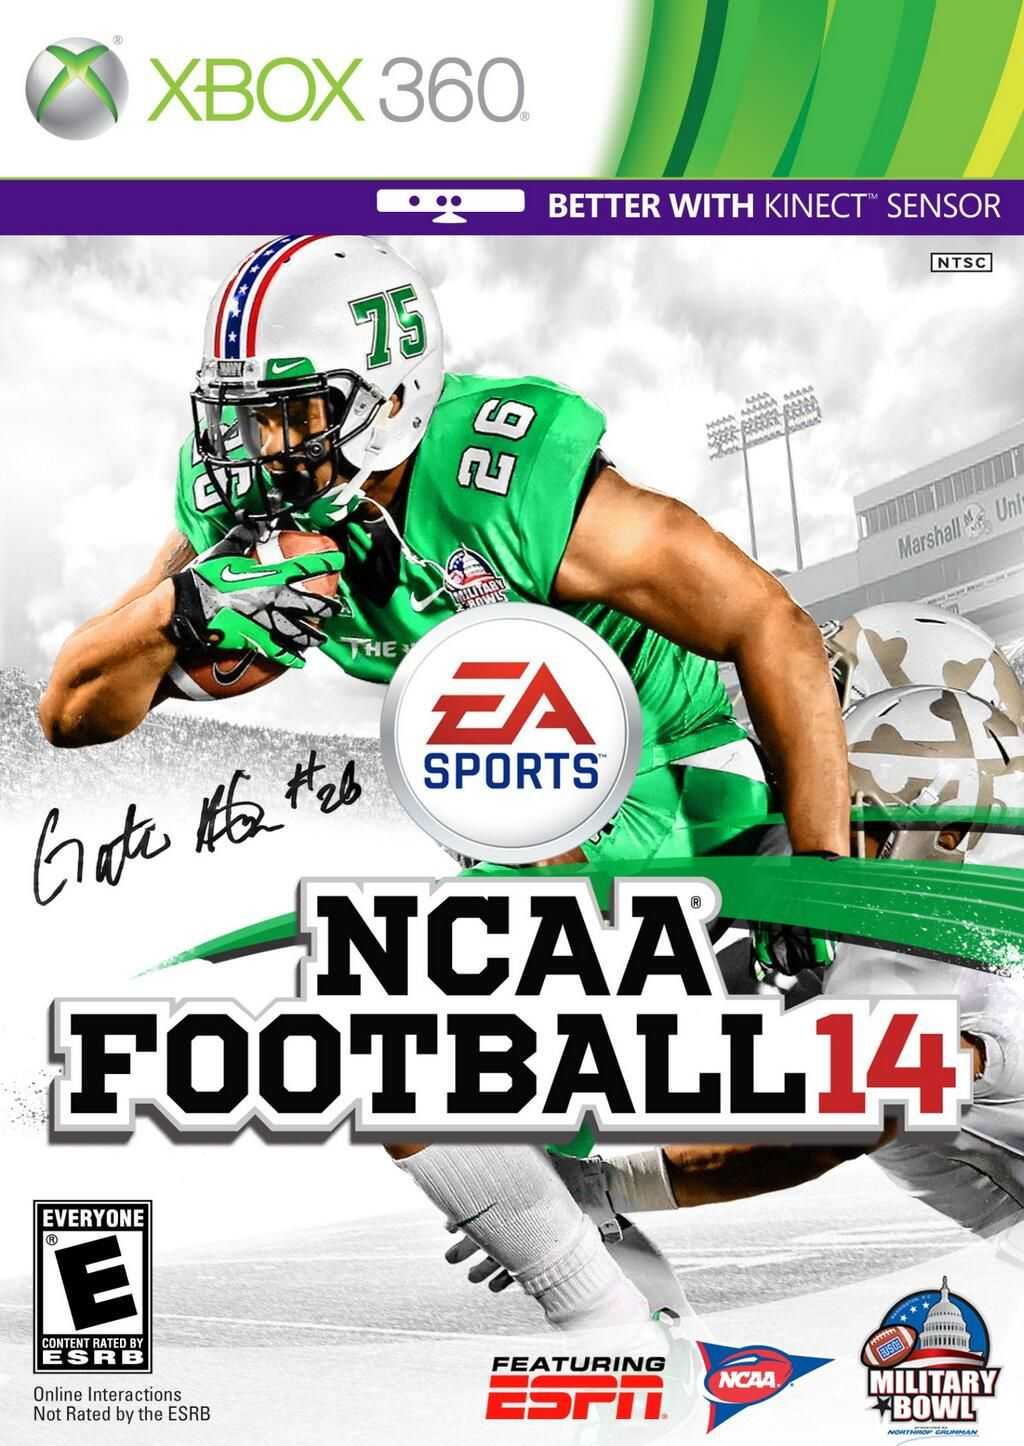 Pin by Zachary Anderson on Ncaa football in 2020 (With